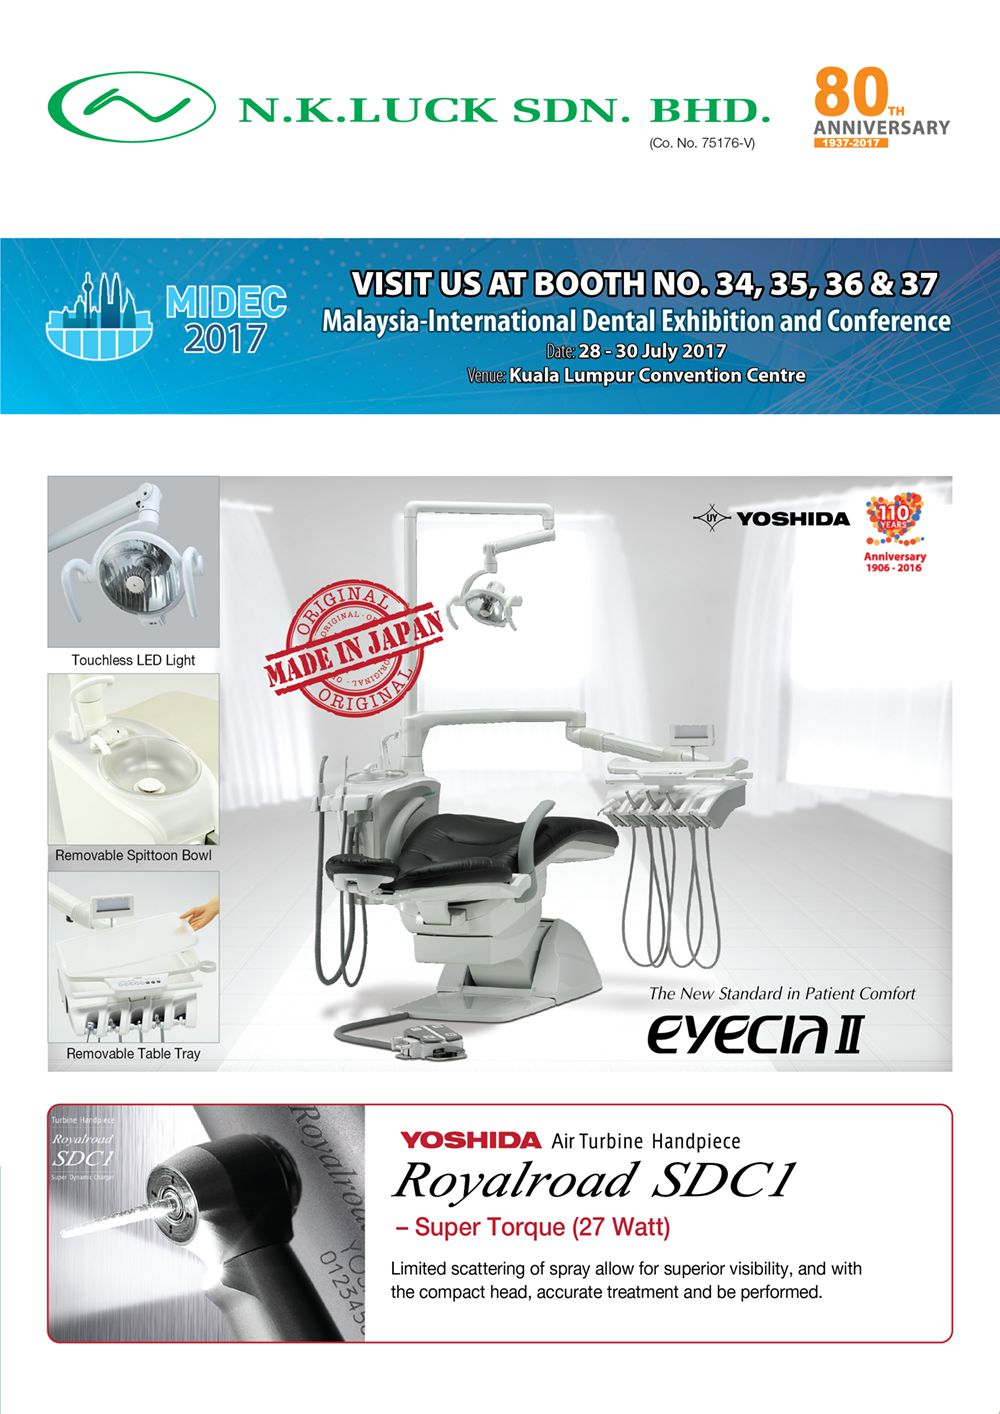 PROMOTTION - VISIT US AT BOOTH NO. 34, 35, 36 and 37